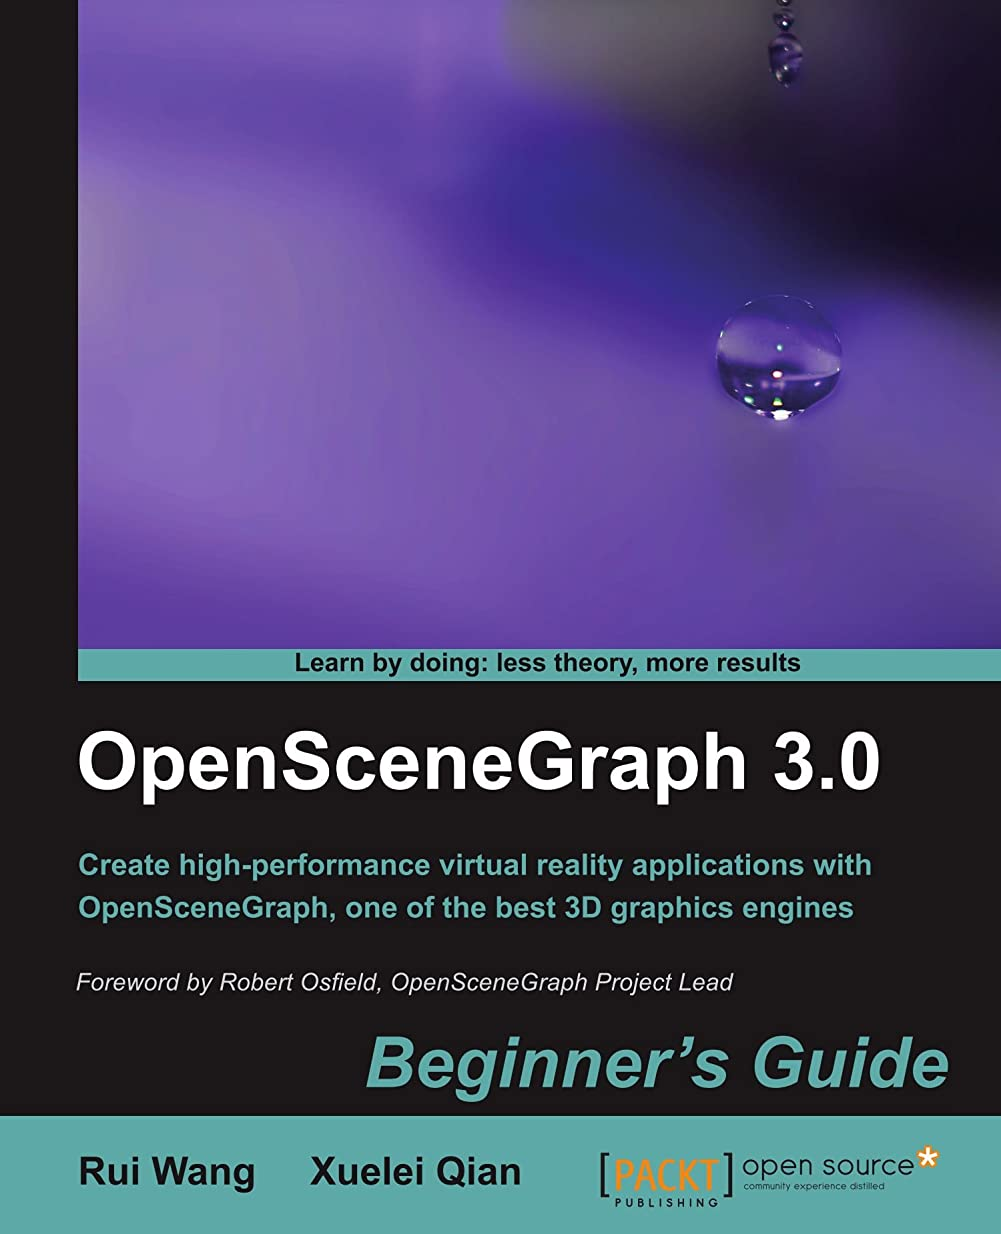 ドライブエクステント抜本的なOpenSceneGraph 3.0: Beginner's Guide: Create high-performance virtual reality applications with OpenSceneGraph, one of the best 3D graphics engines